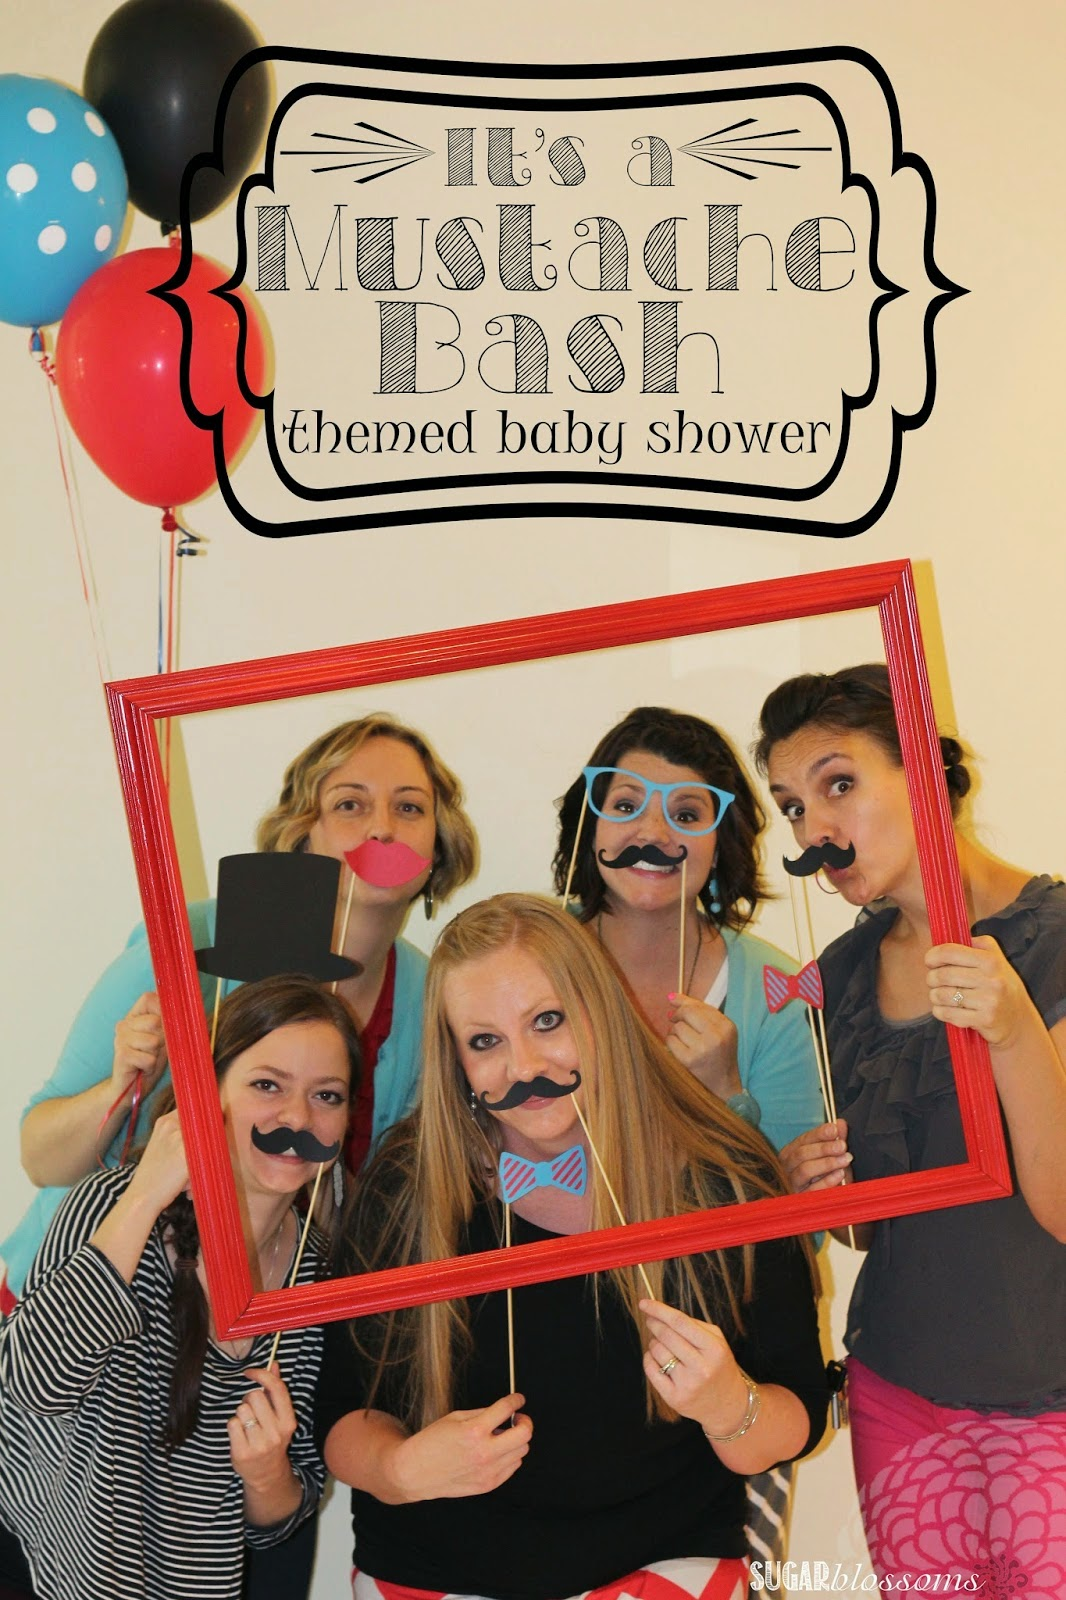 http://sweetsugarblossoms.blogspot.com/2014/06/a-mustache-bash-themed-baby-shower.html